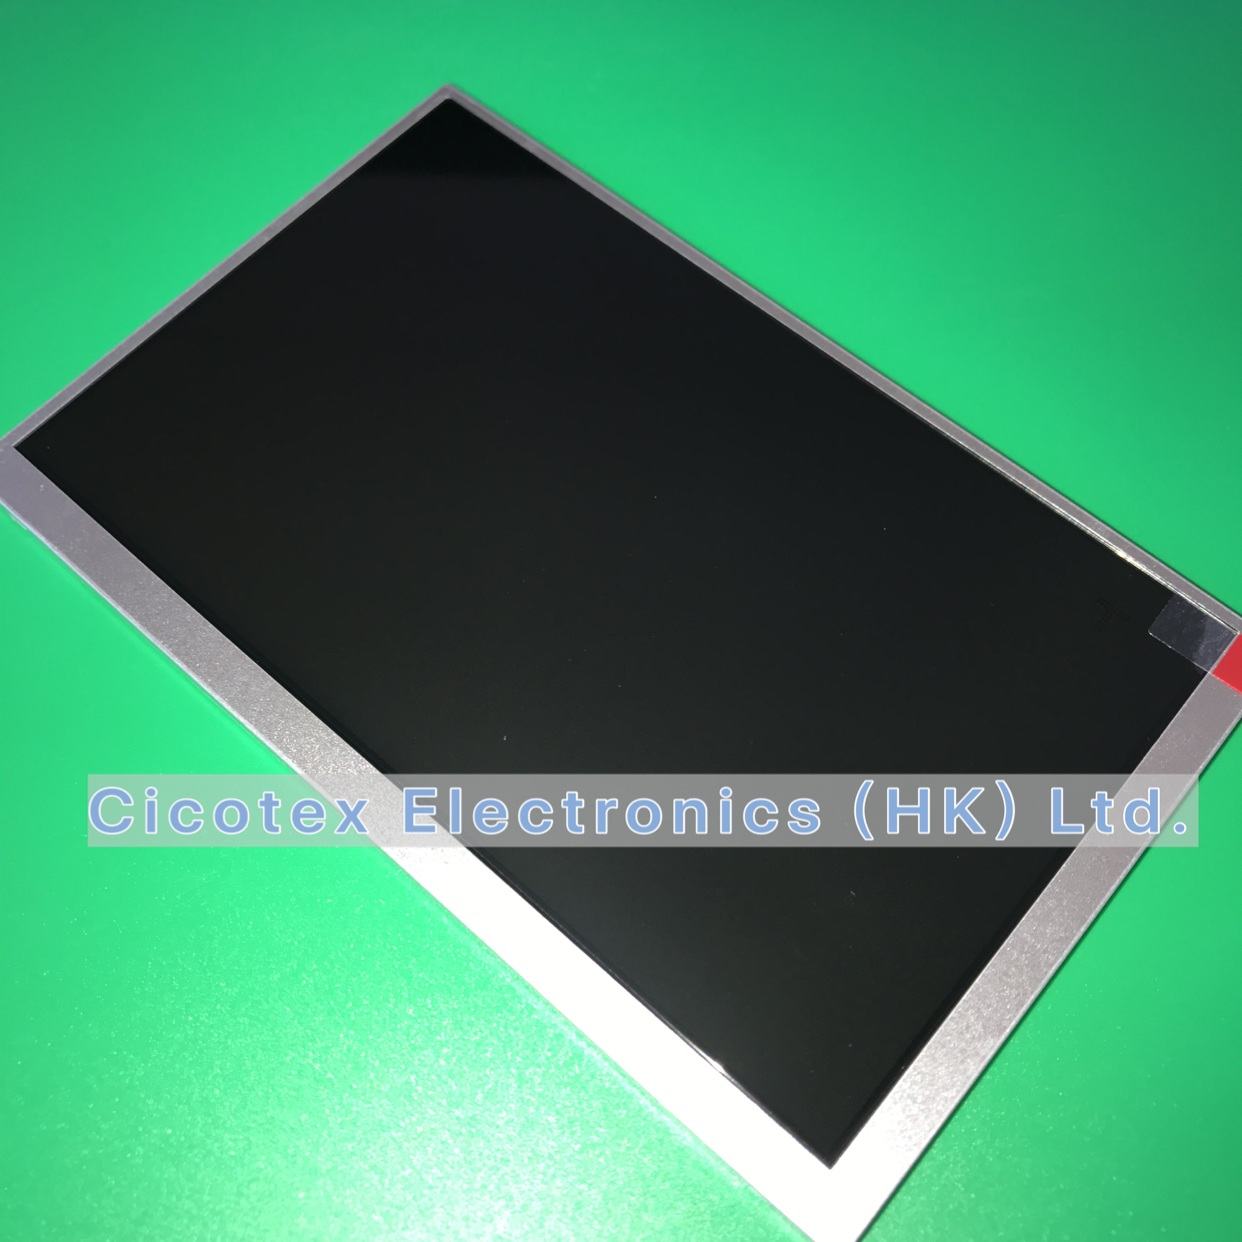 AT070TN83 V.1 ATO70TN83 ATO7OTN83 7inch TFT LCD Color LCD Screen Modules 800*480 Original (15:9) AT070TN83V.1